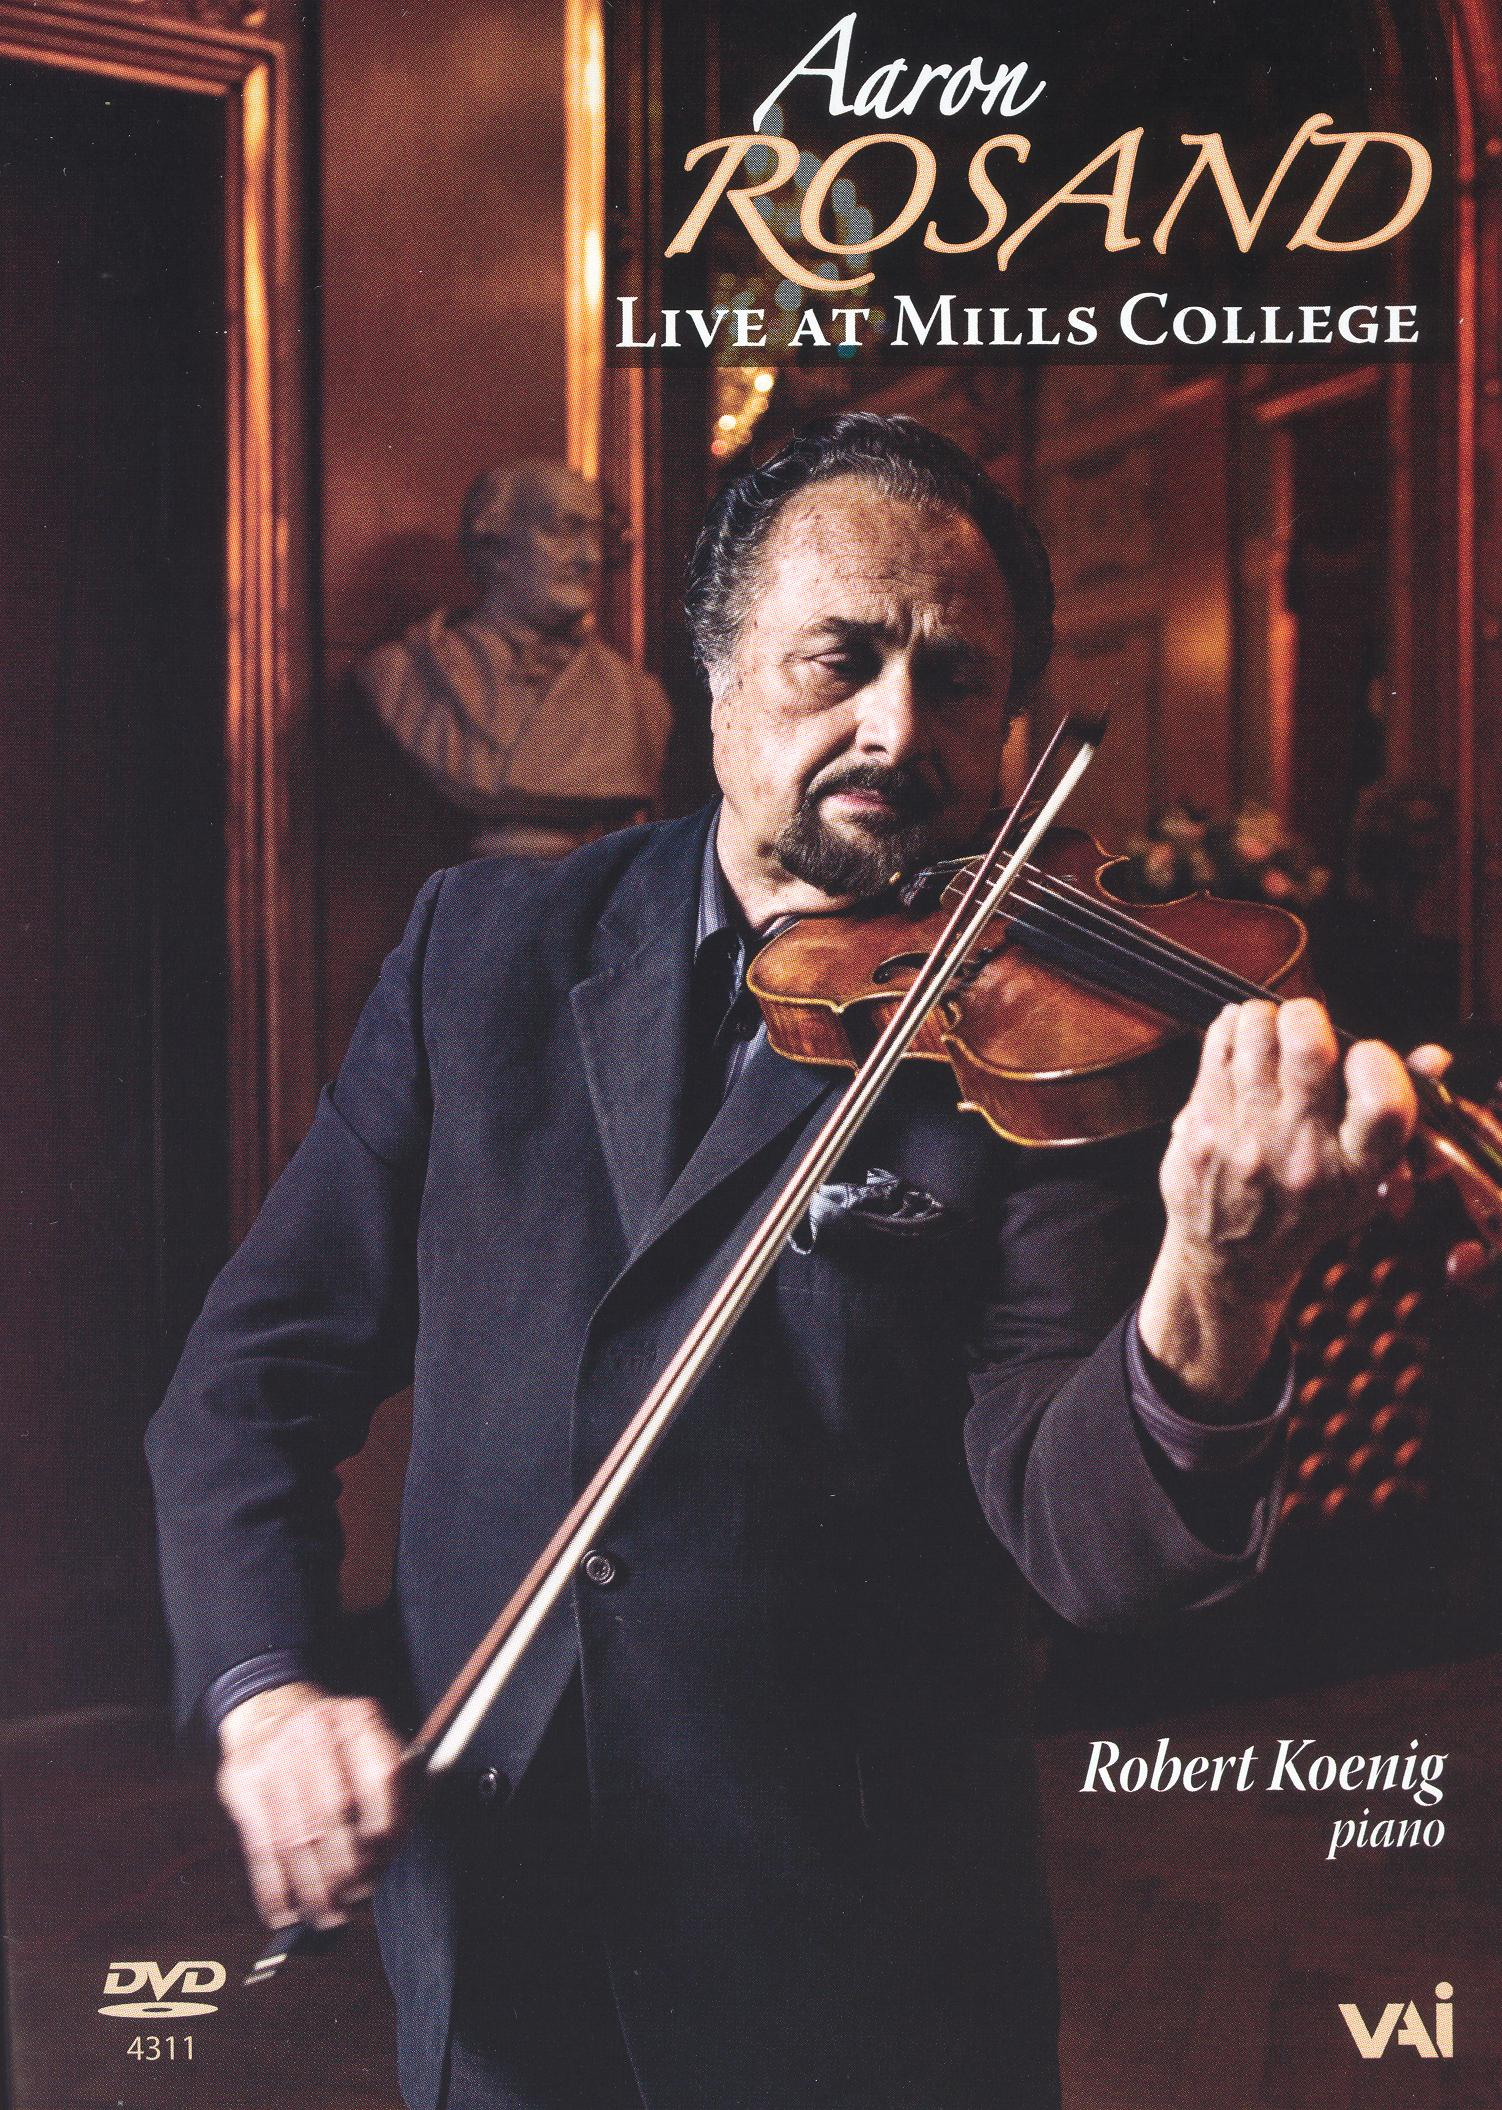 Aaron Rosand: Live at Mills College